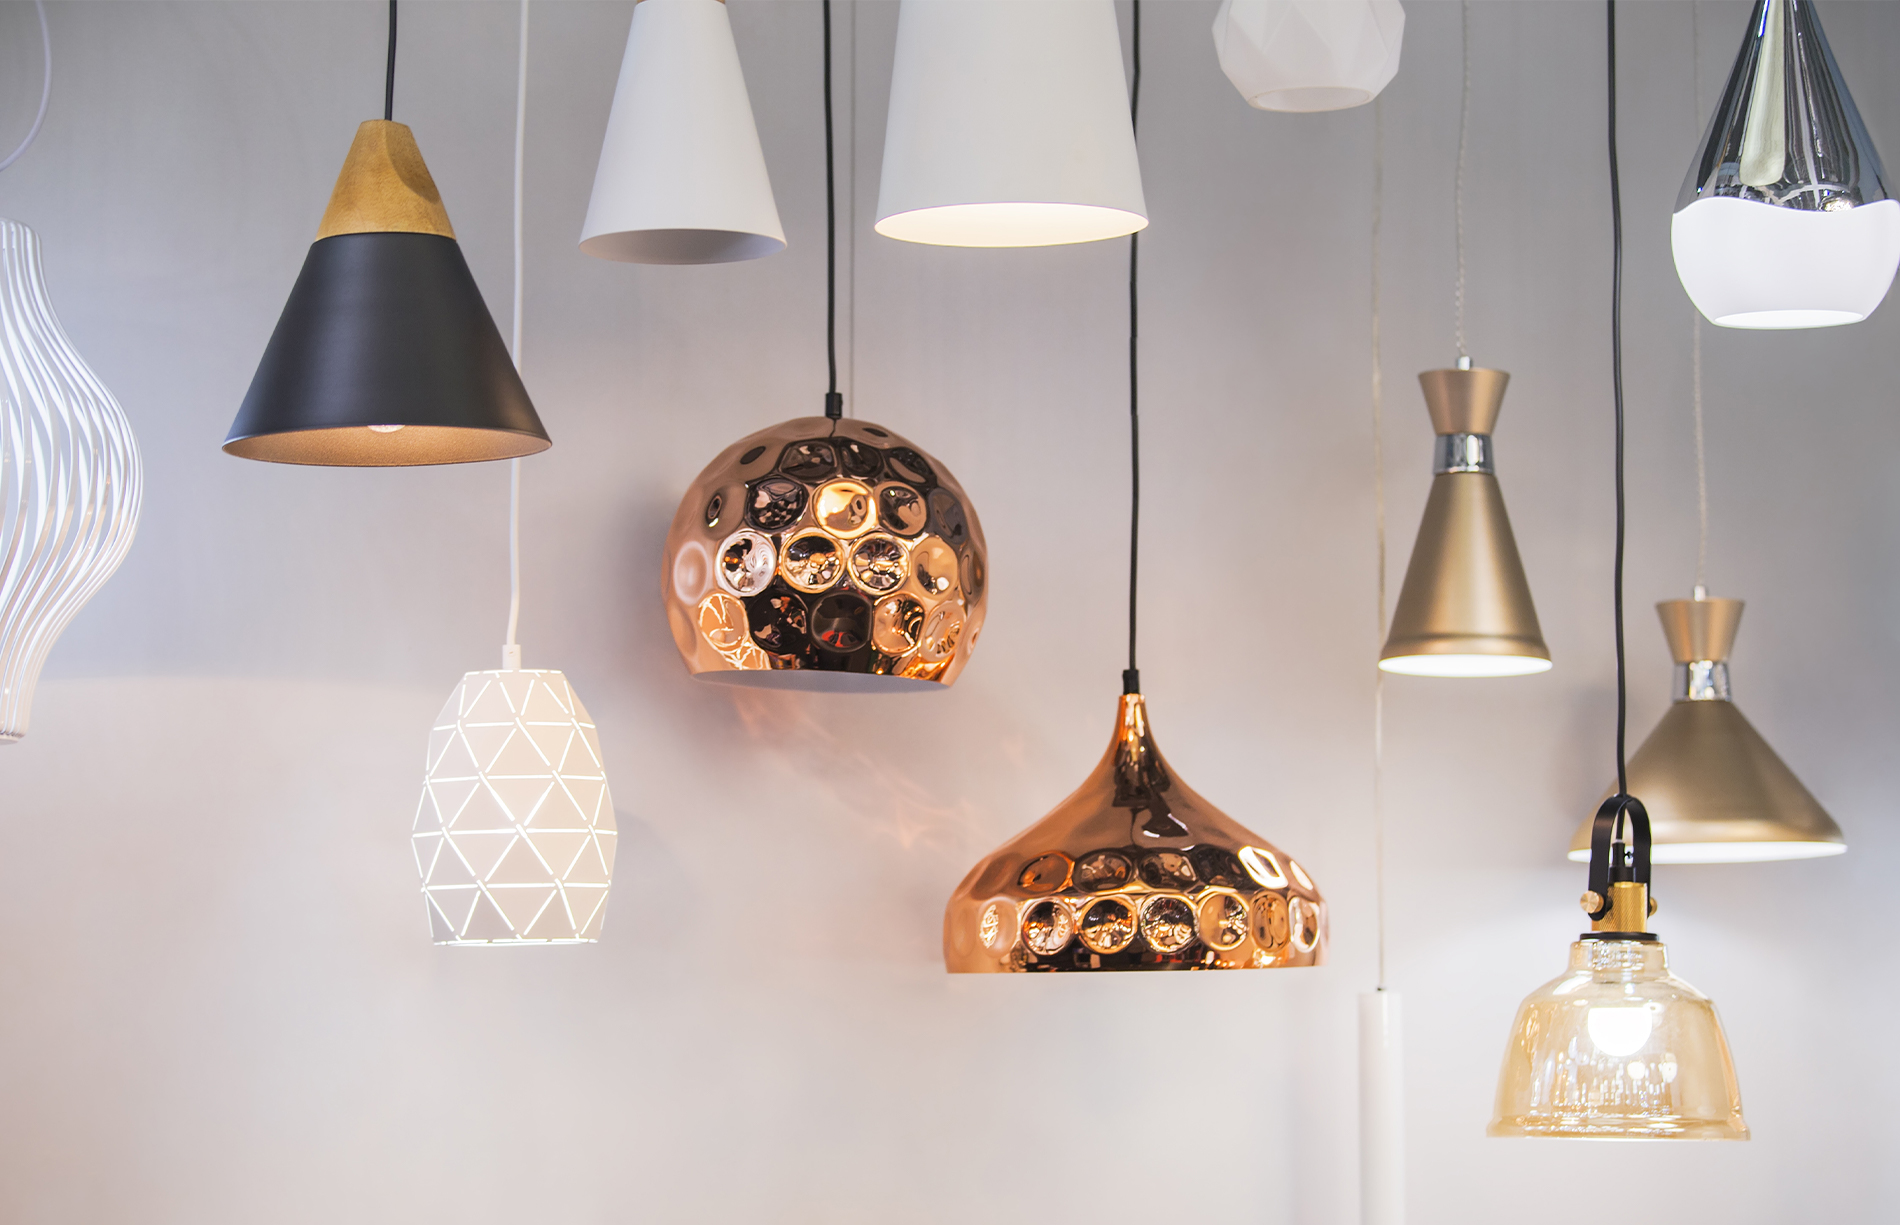 How Creative Lighting Can Help Stage the Home